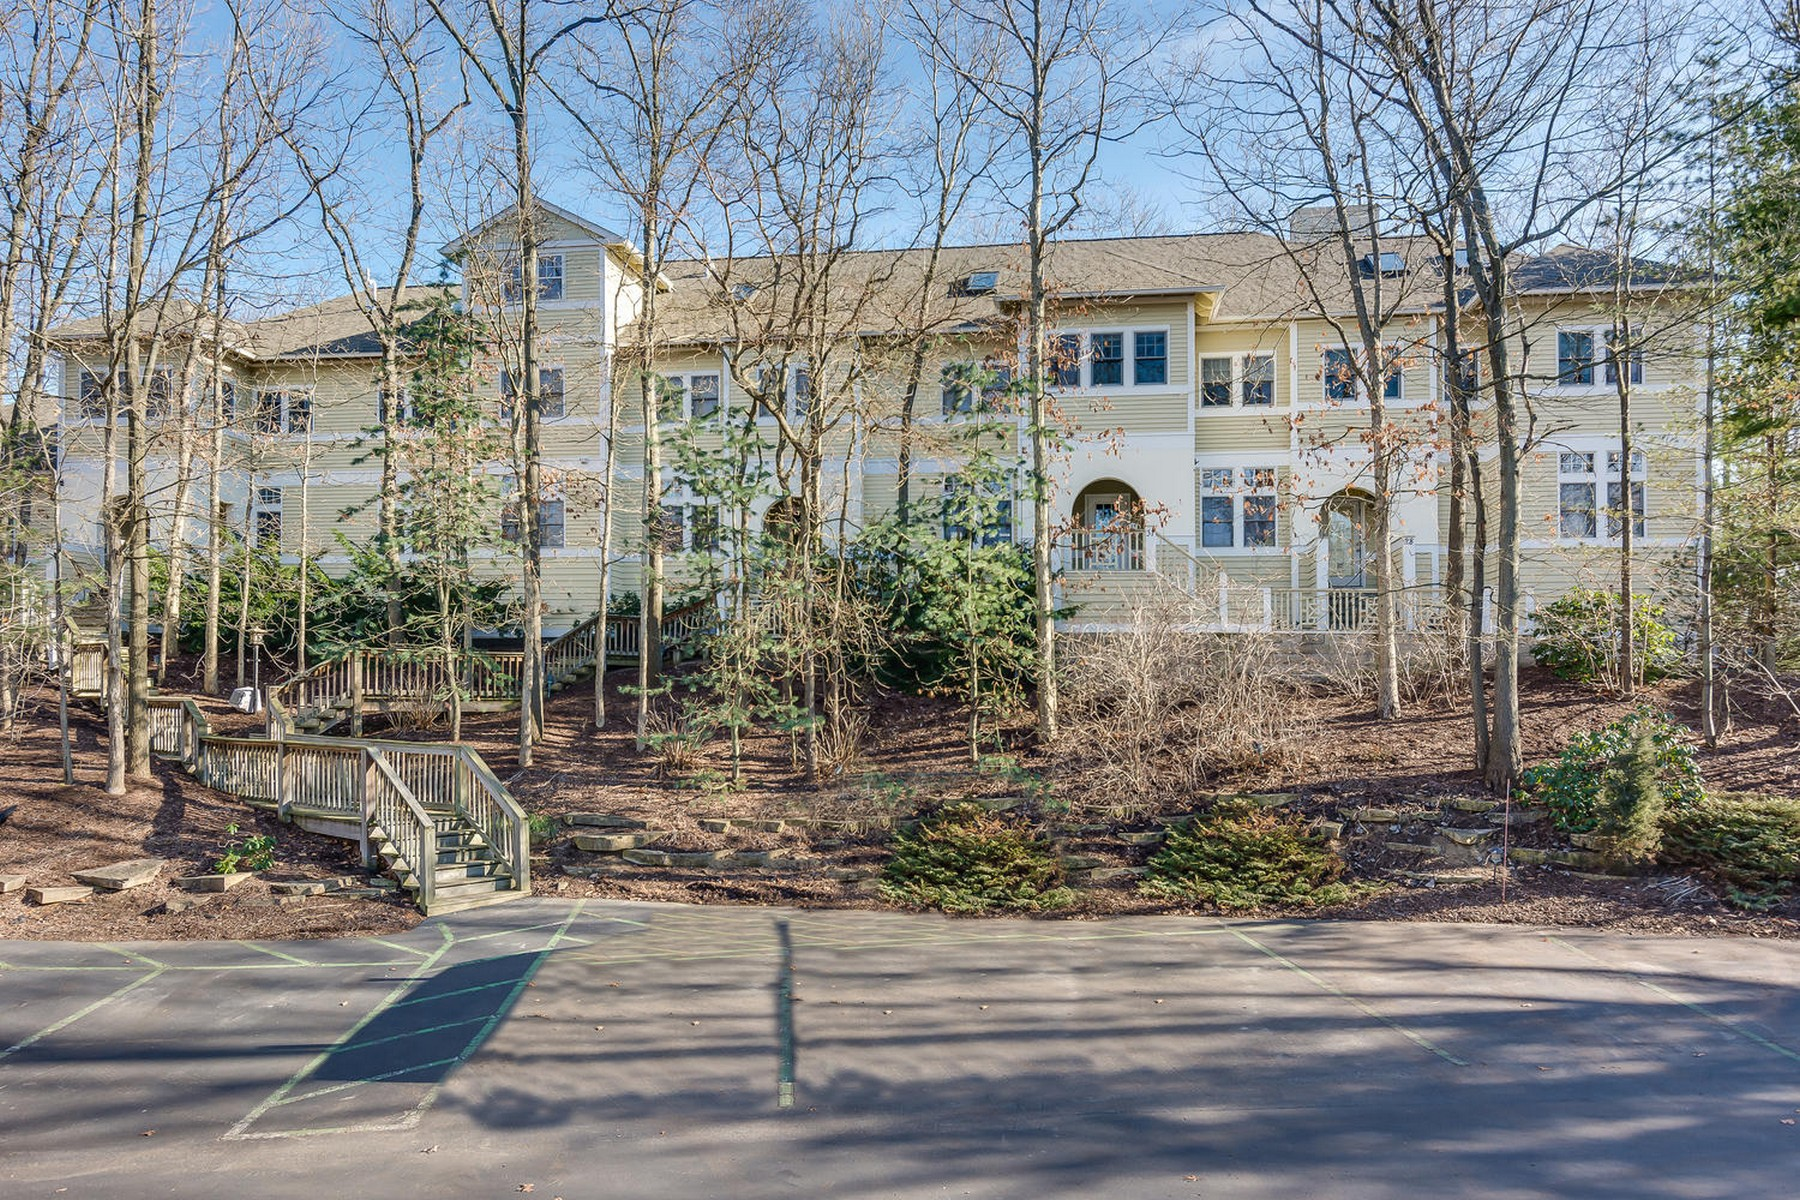 Condominium for Sale at Dunecrest Villa 18485 Dunescrest #27 New Buffalo, Michigan 49117 United States